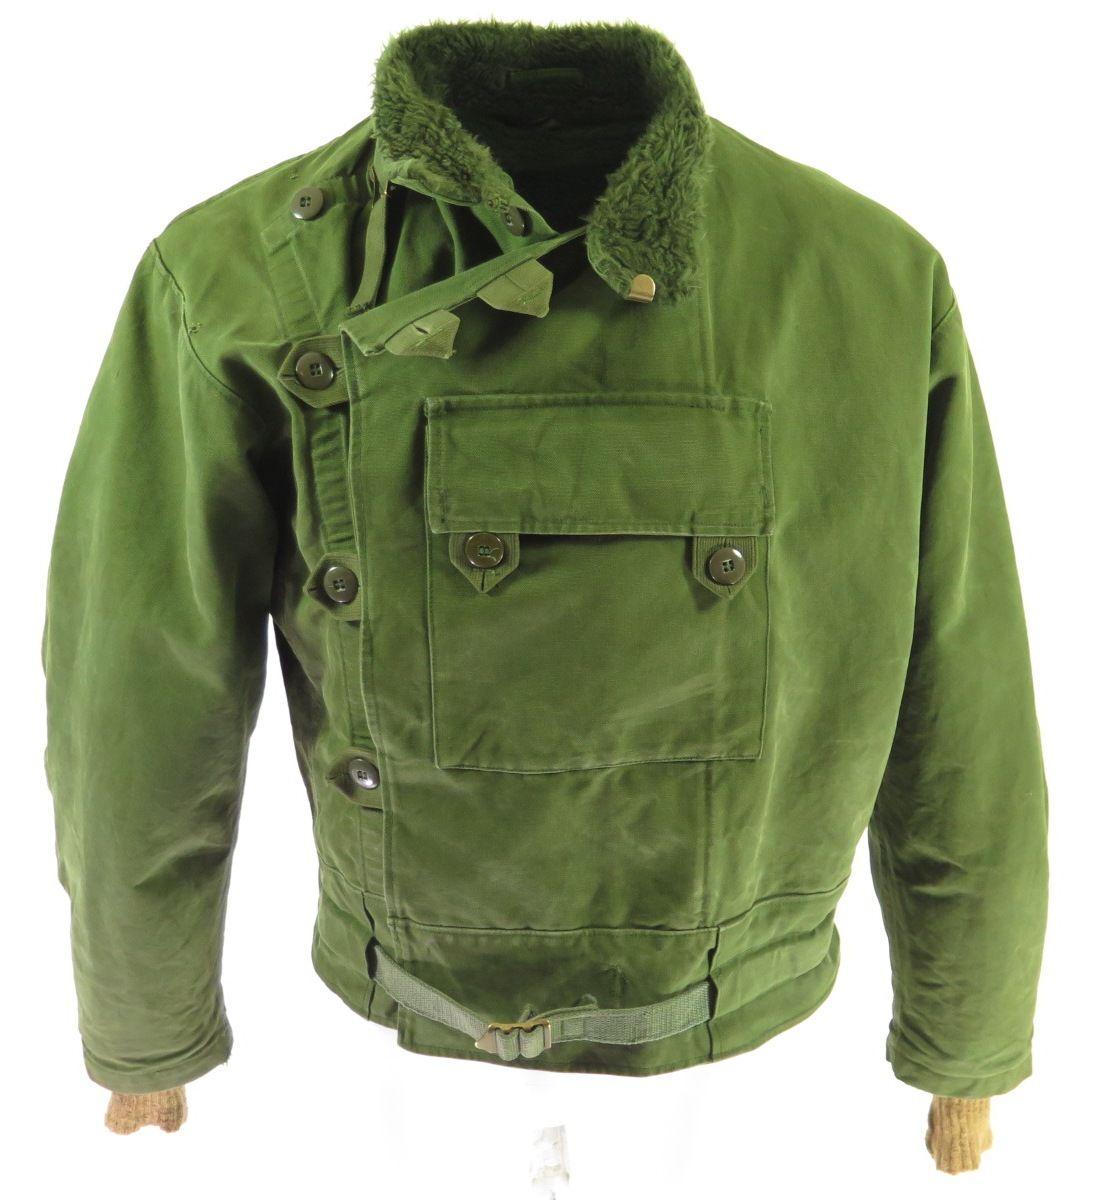 Details Made In Switzerland By Unknown Green Color No Fabric Tags Feels Like Heavy Duty Cotton Material Motorcycle Jacket Mens Army Motorcycle Swedish Army